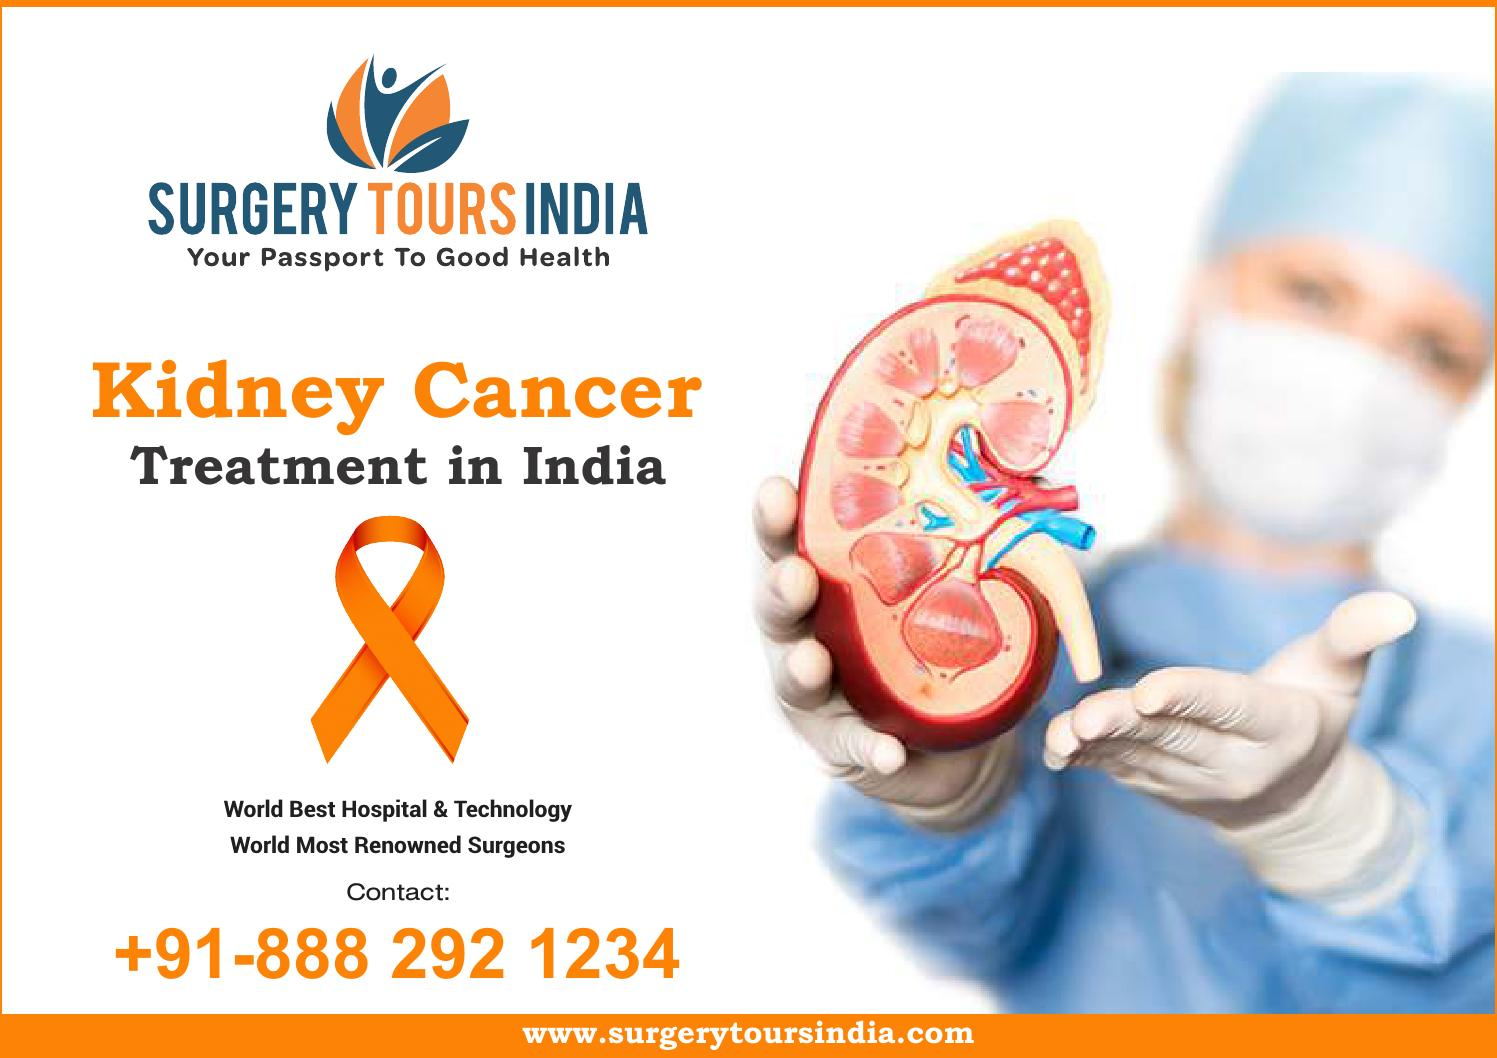 Kidney Cancer Treatment In India Surgerytoursindia By Surgery Tours India Issuu